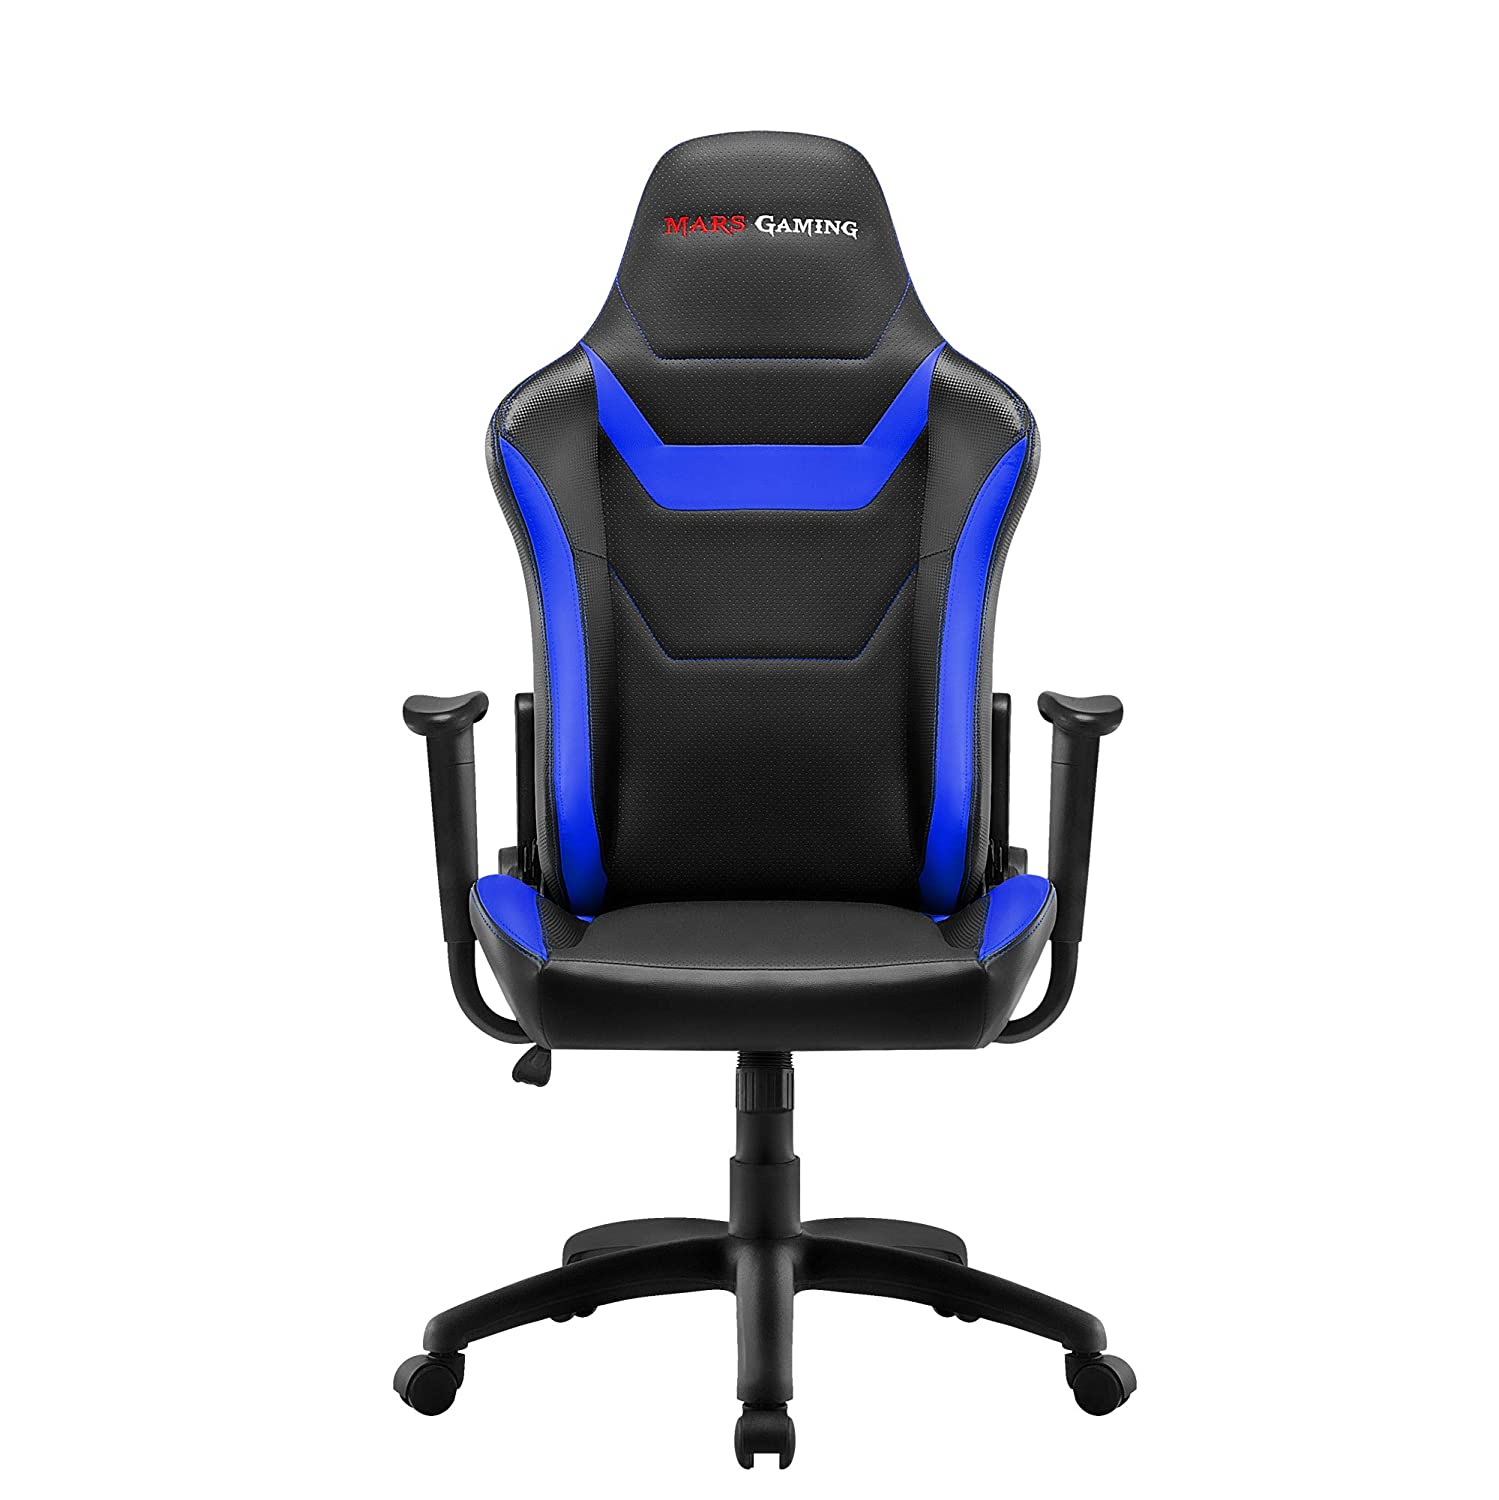 Mars Gaming MGC218 - Silla profesional, tecnología AIR, reclinable 180°, azul: Amazon.es: Hogar